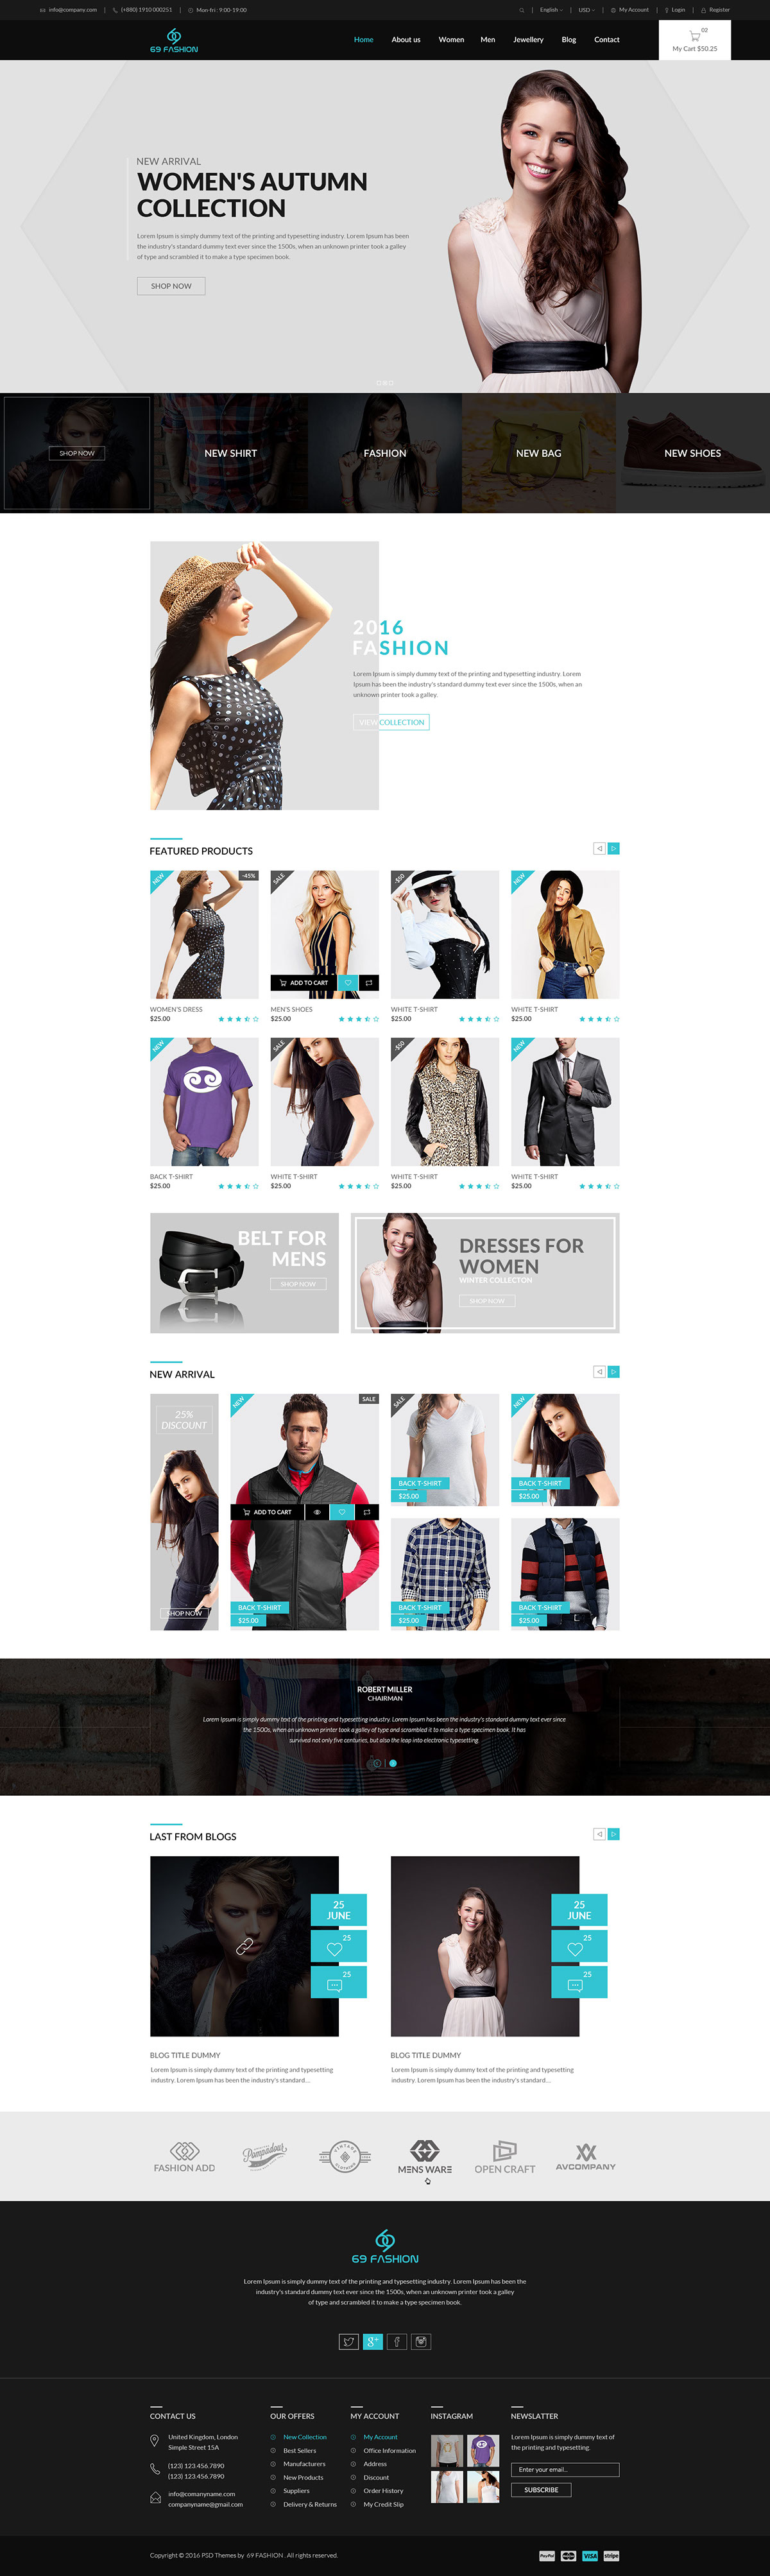 69 Fashion – eCommerce PSD Template on Behance | Ecommerce ...